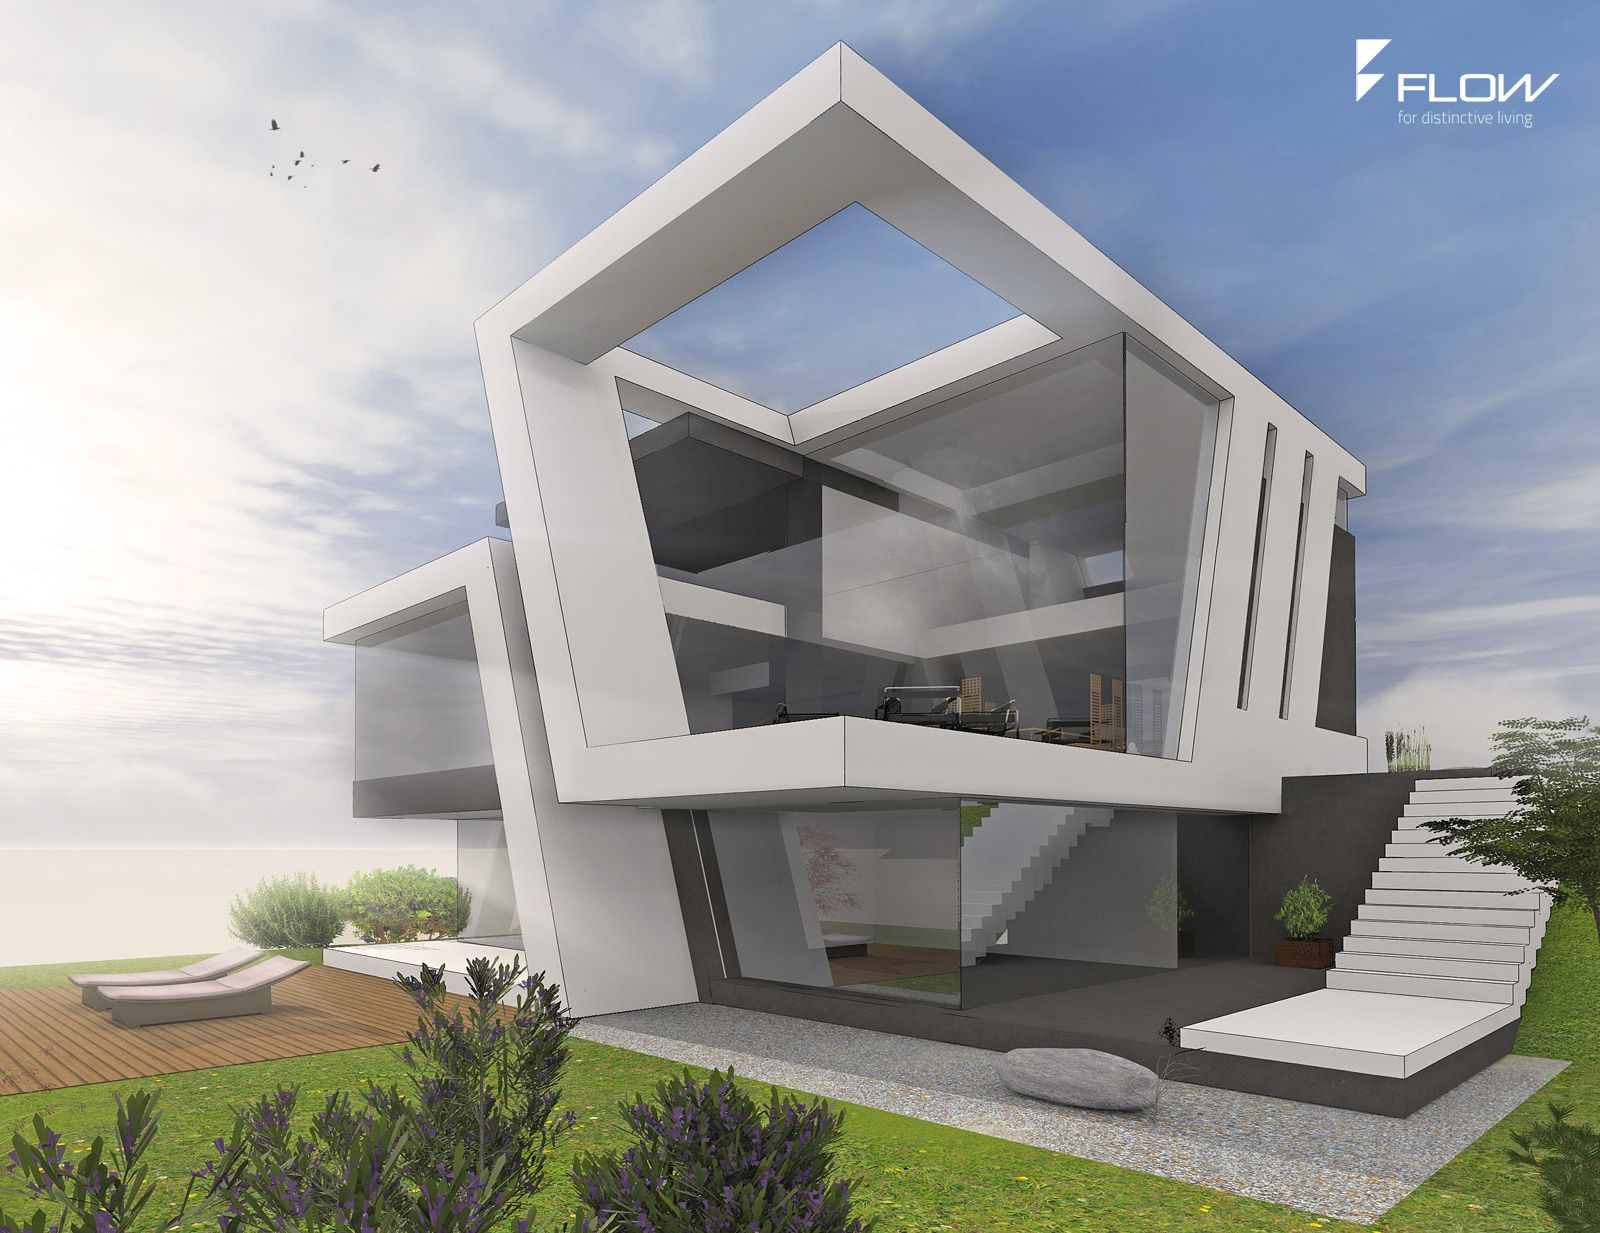 contemporary house - Google-Suche Hausentwürfe Pinterest ... size: 1600 x 1233 post ID: 7 File size: 0 B